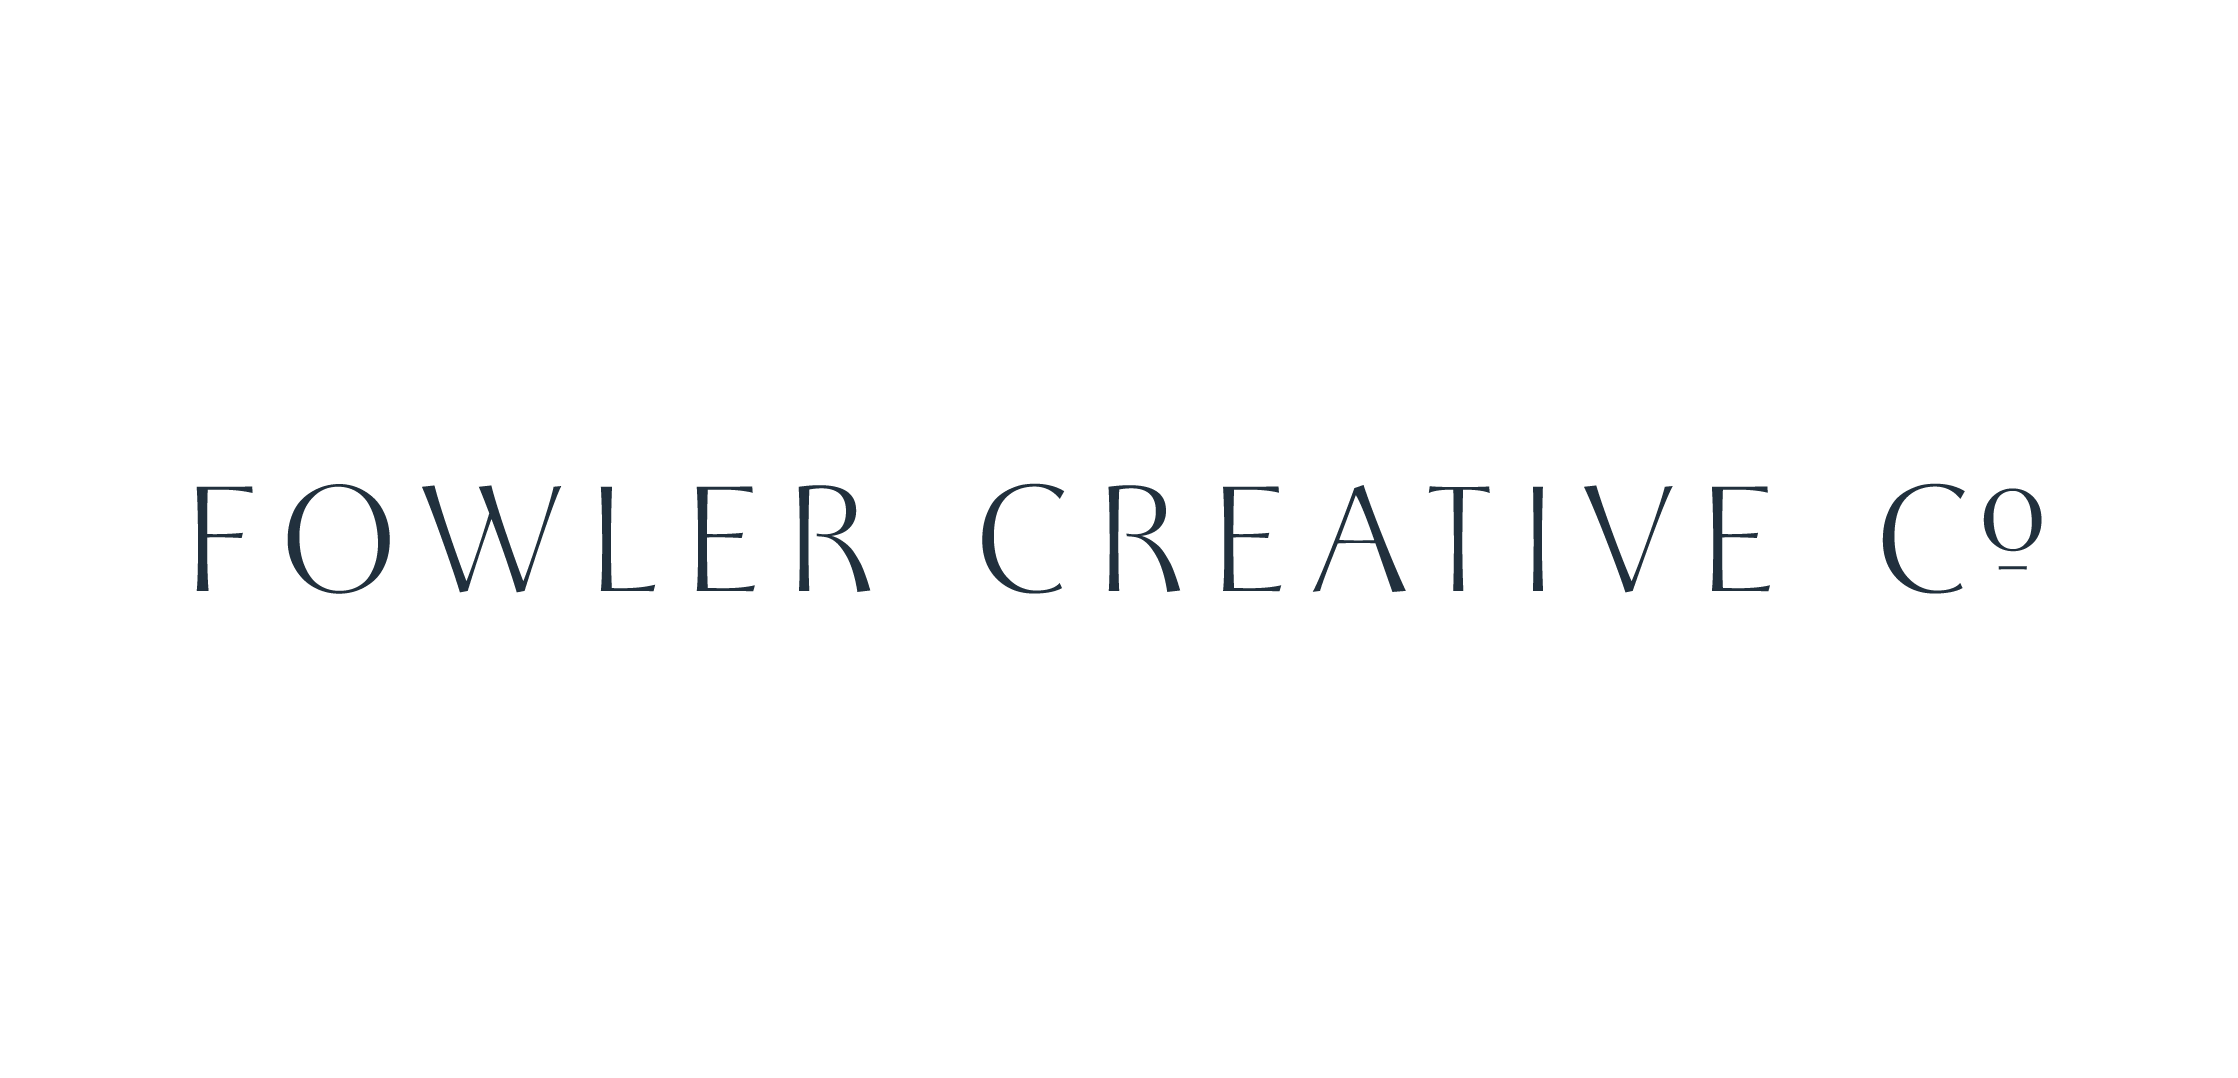 Fowler Creative Co.